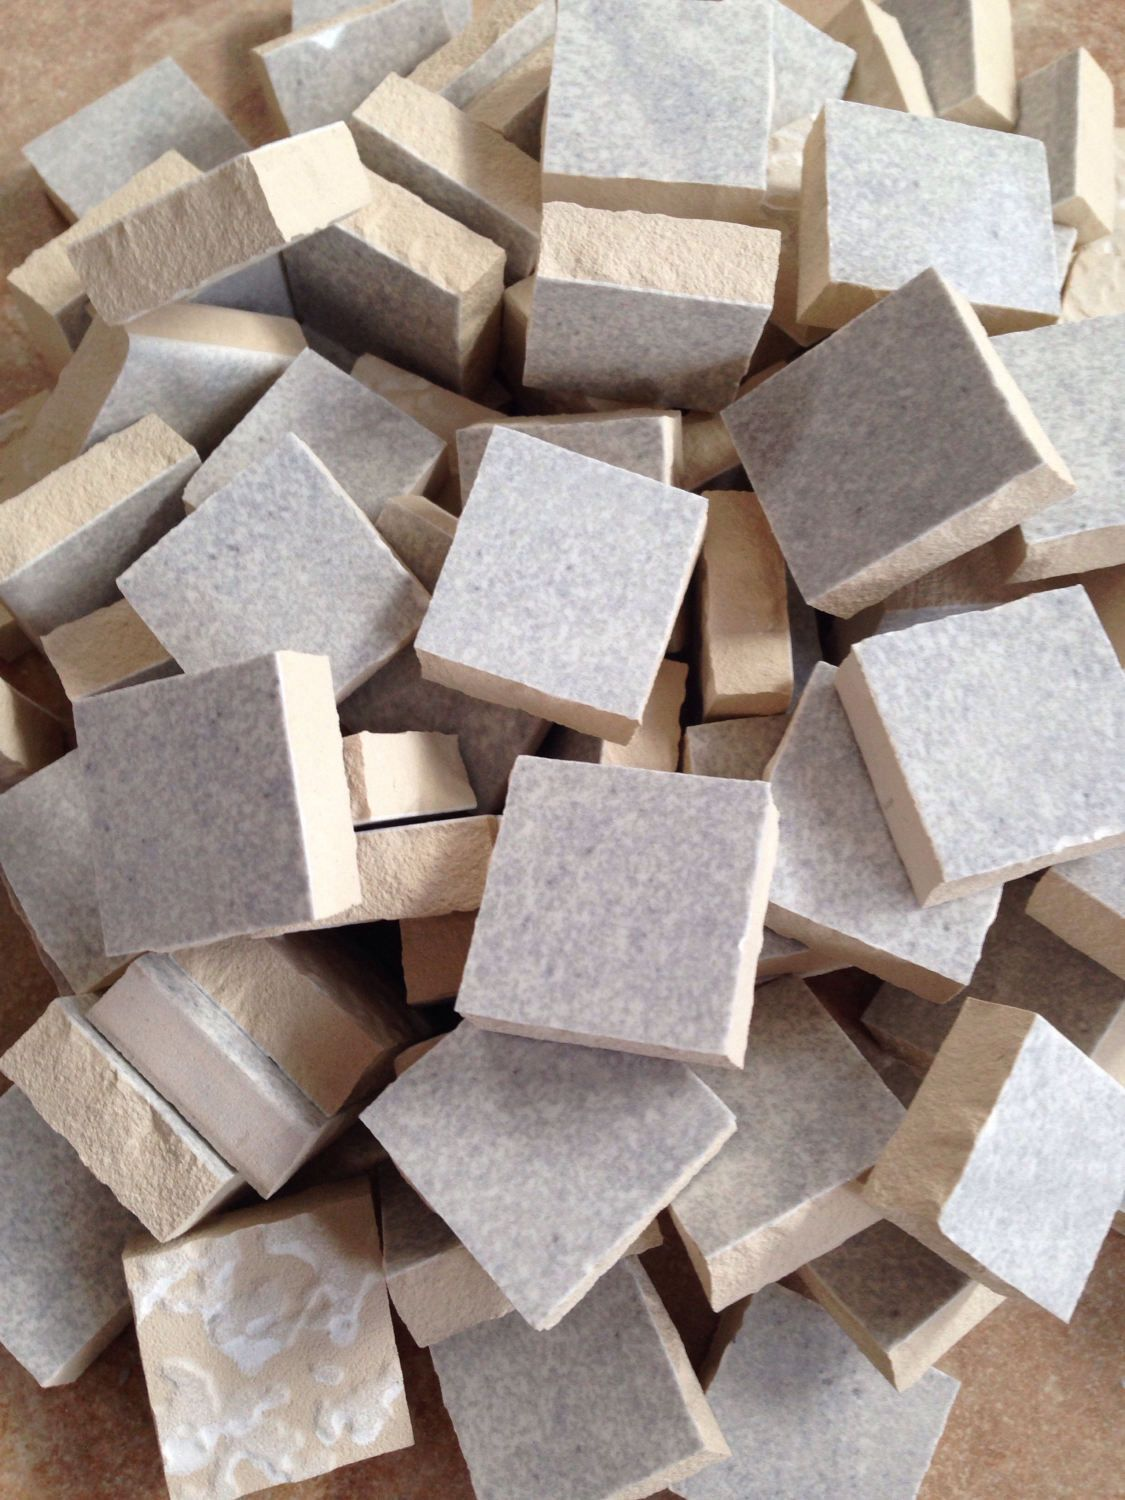 Mosaic tile supplies set of 90 gray white ceramic pieces hand mosaic tile supplies set of 90 gray white ceramic pieces hand cut mosaic tile art supplies mosaic project supplies mosaic pieces dailygadgetfo Gallery